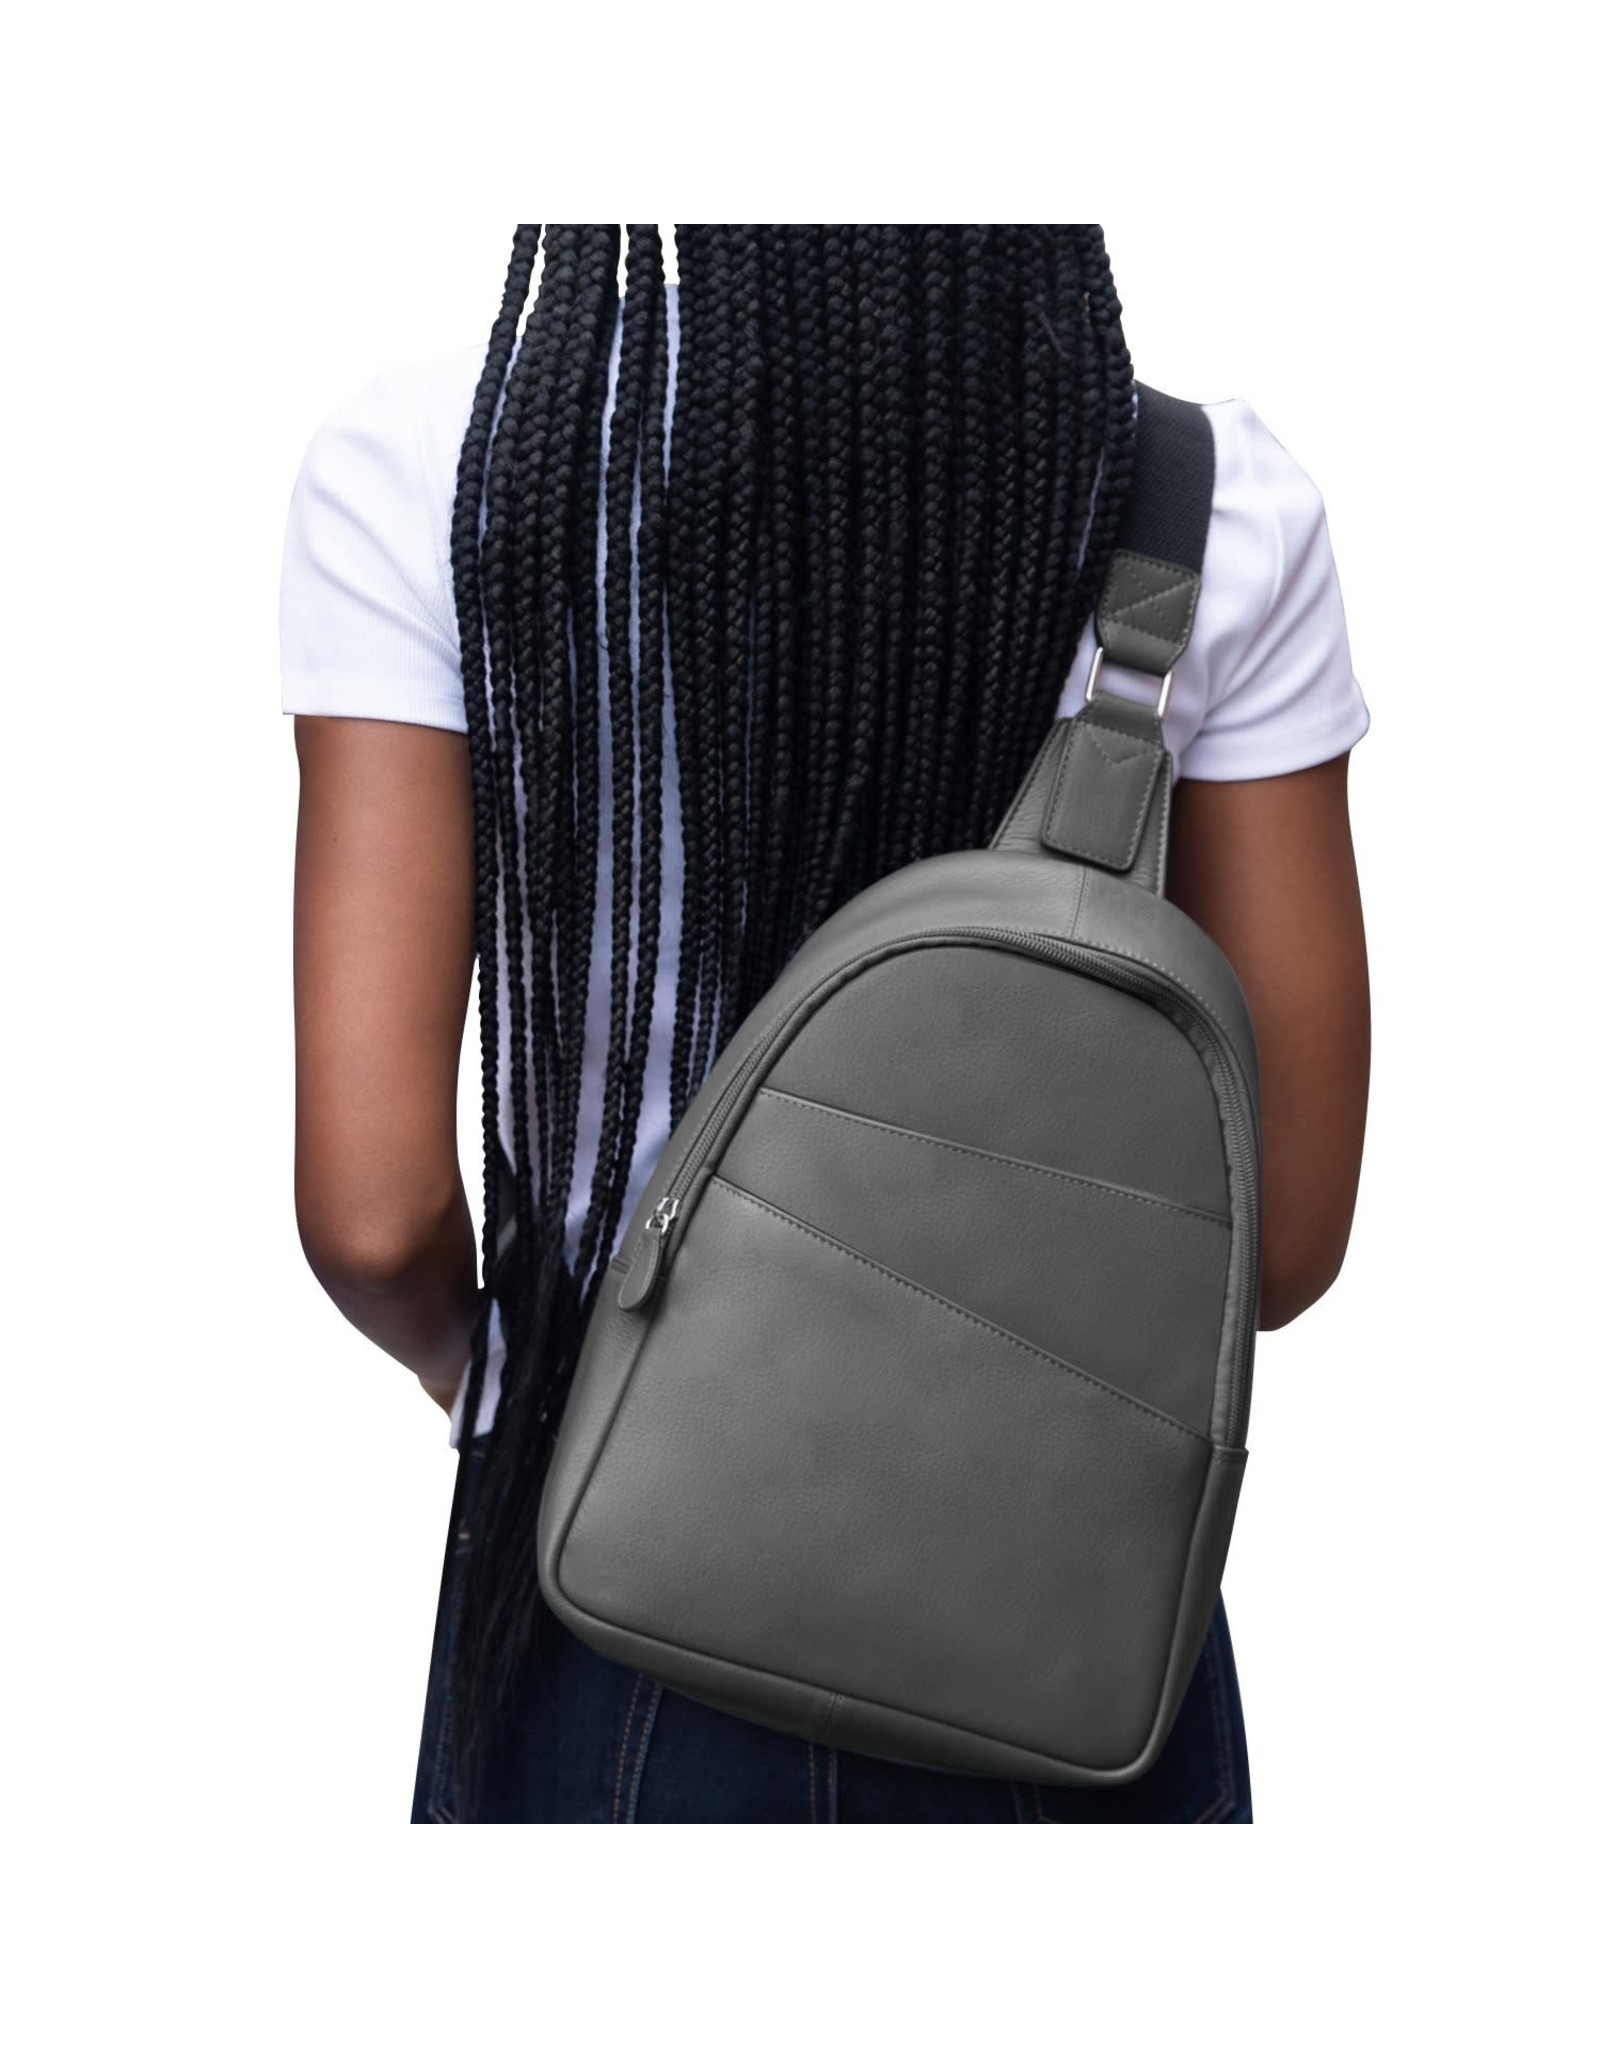 Leather Handbags and Accessories 6507 Gray - Sling Backpack